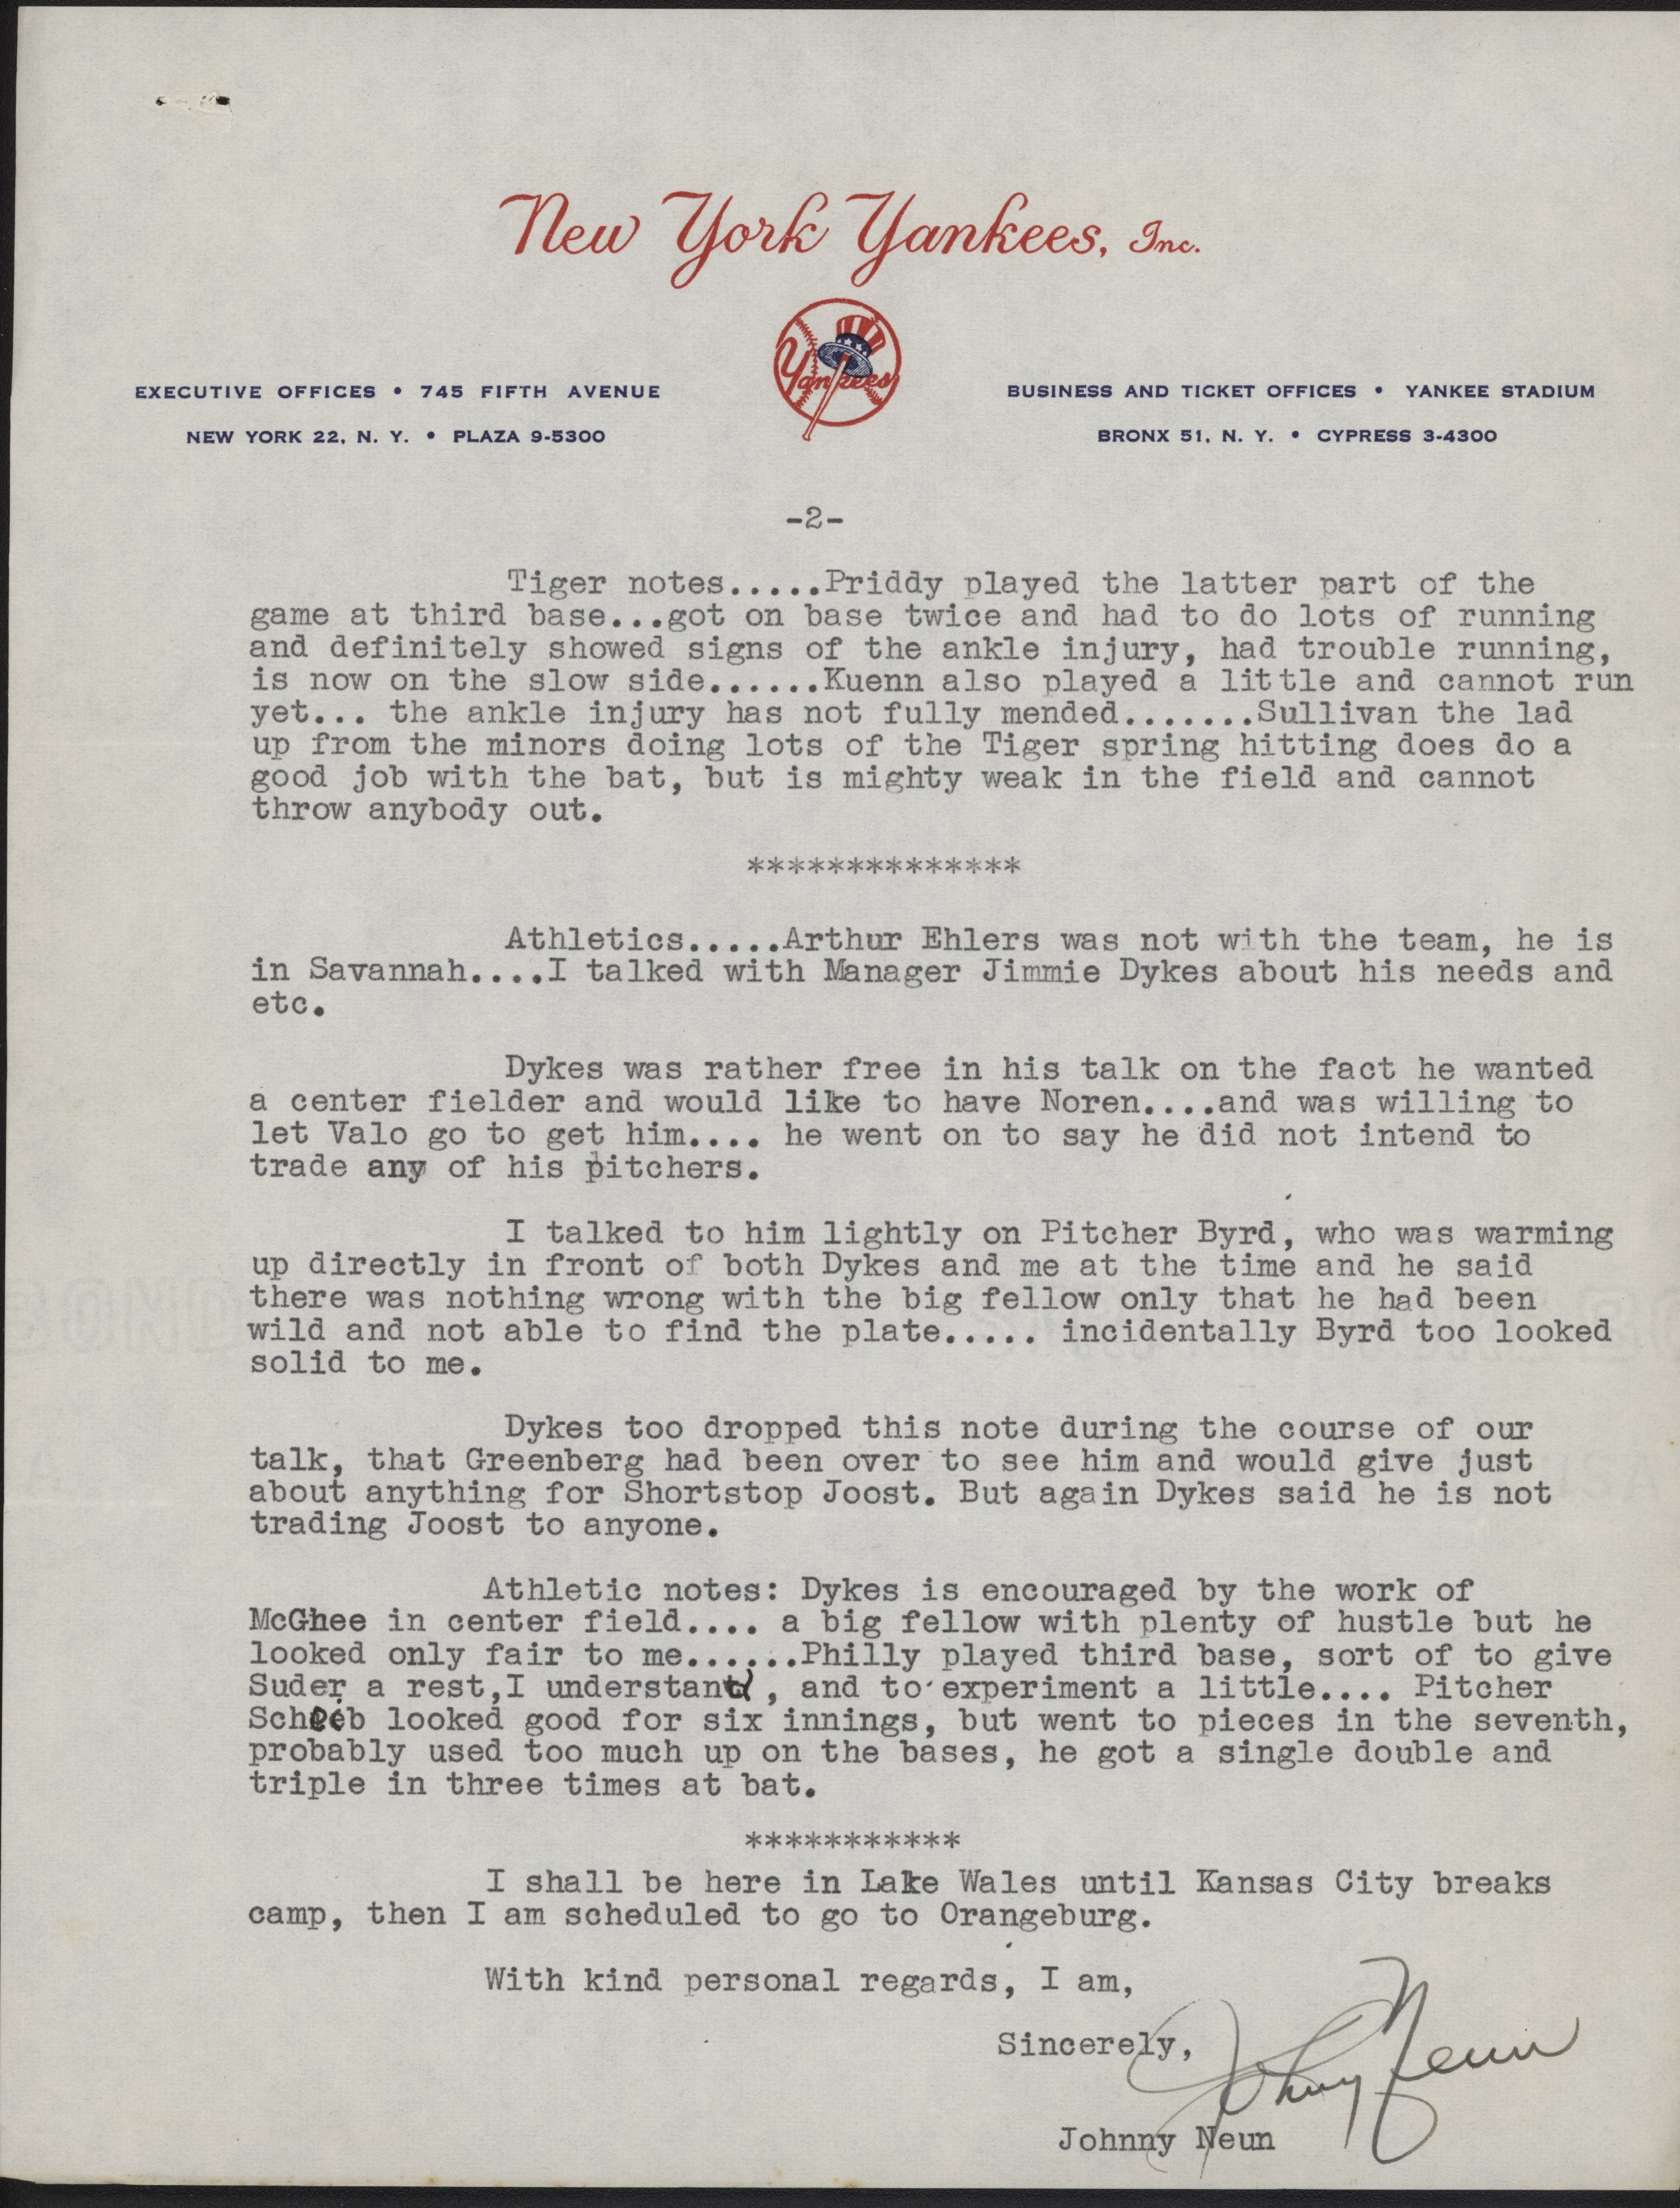 1953 Yankees Scouting Report to George Weiss